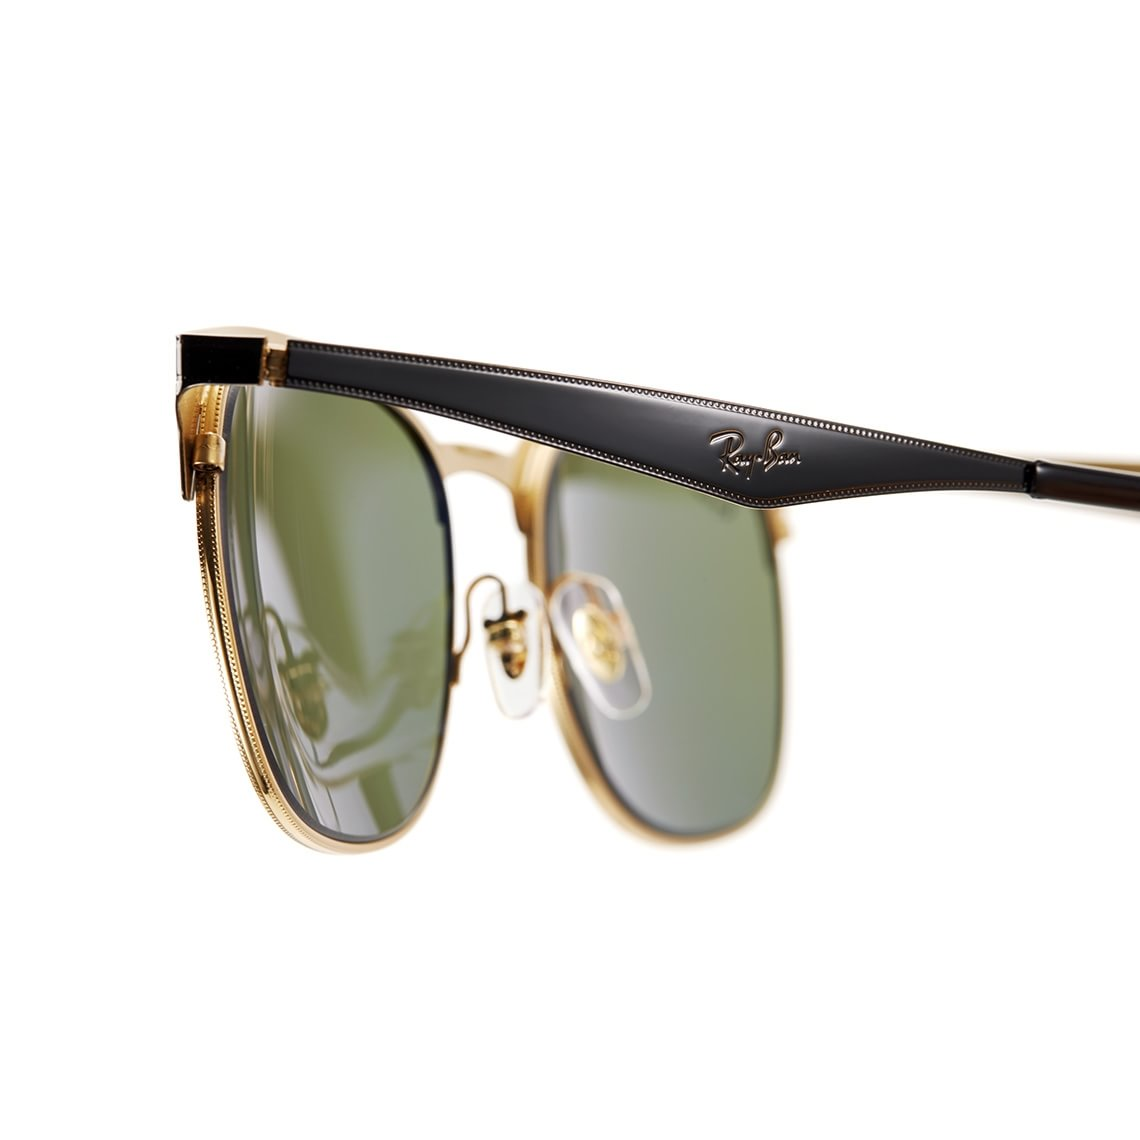 376ccca20c Ray-Ban RB3538 187 9A 53 - Synsam